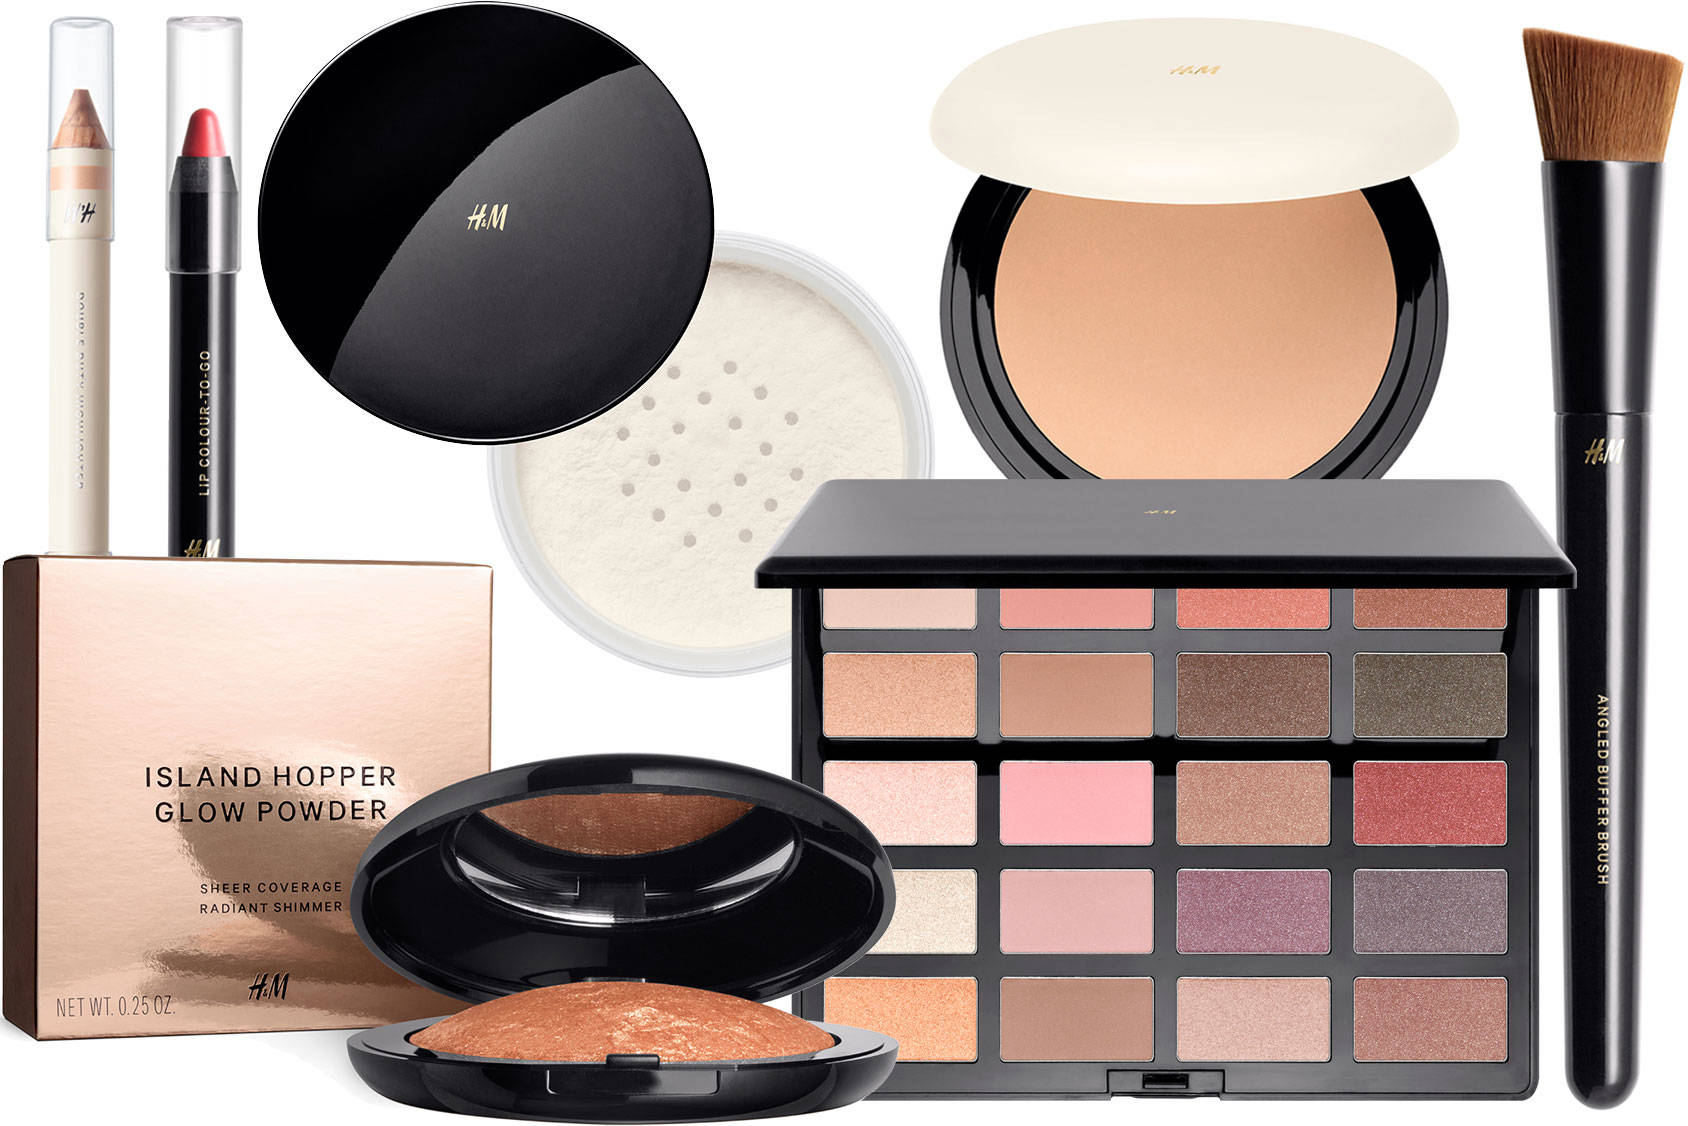 Enter the new beauty season with these 7 must-haves